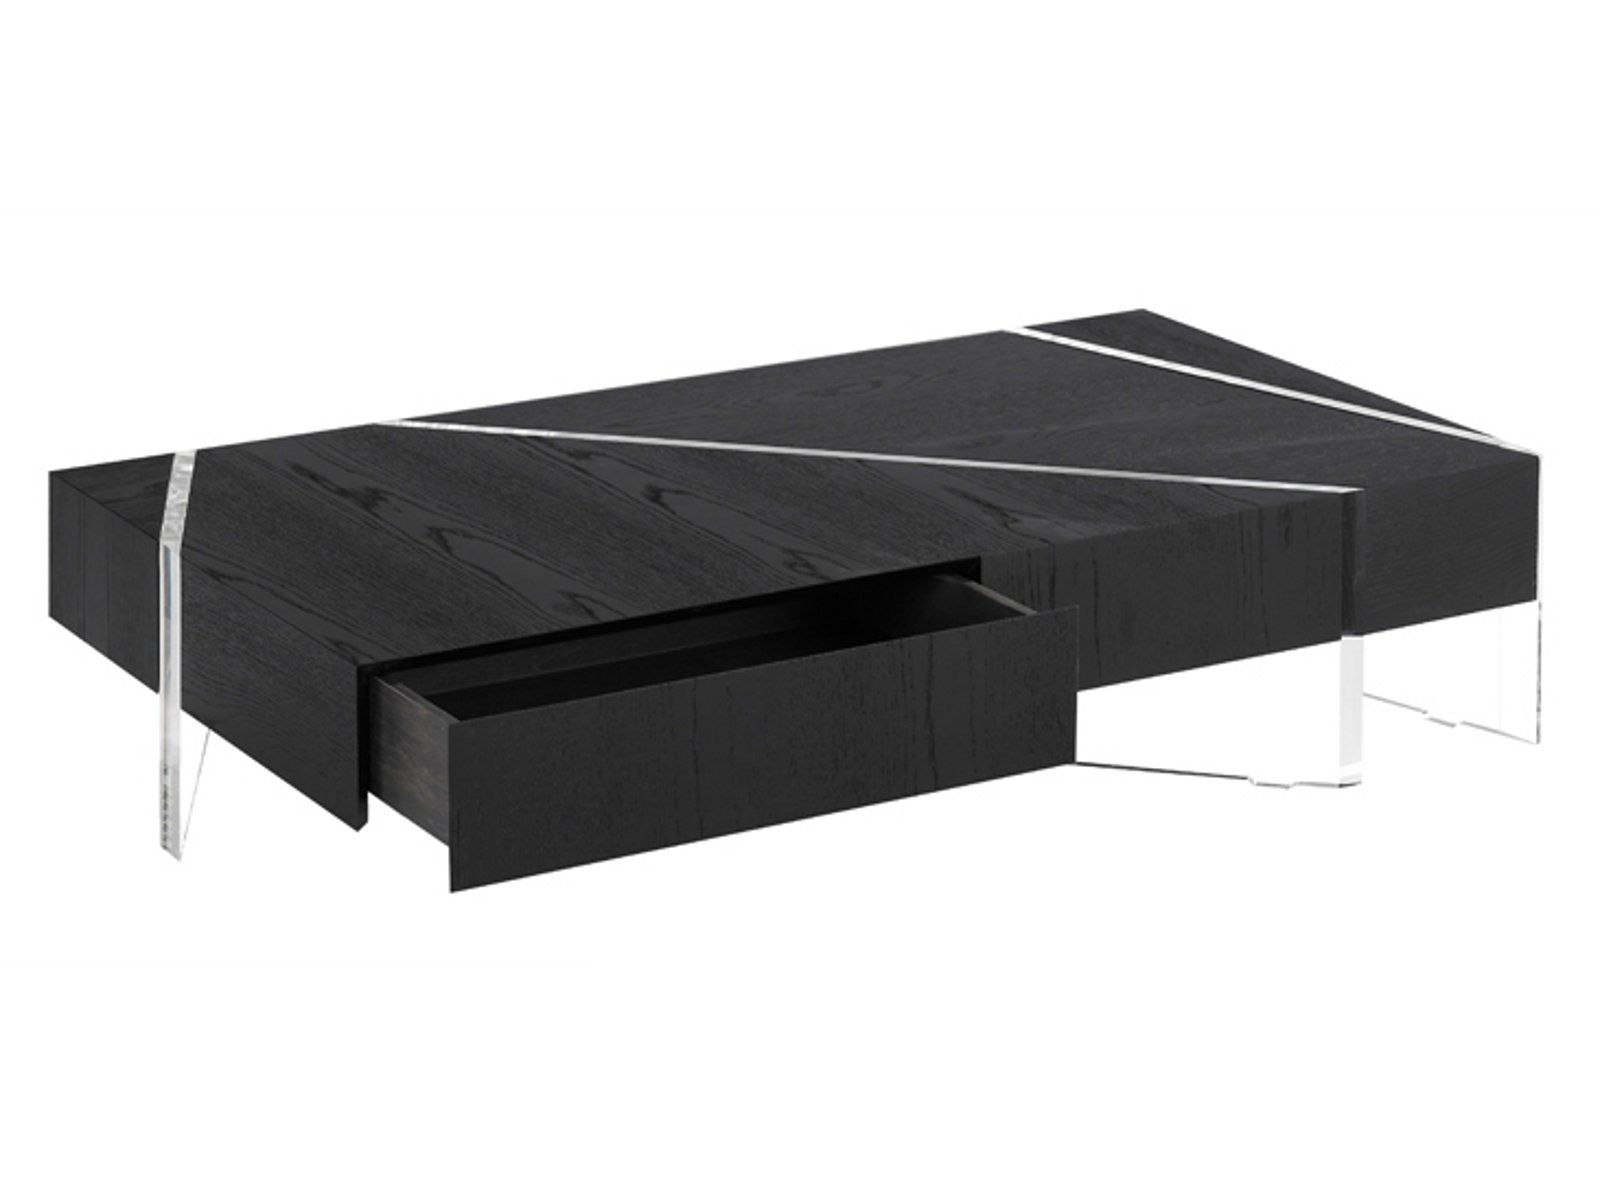 Low rectangular coffee table kristal by la maison turrini design low rectangular coffee table kristal by la maison turrini design erwan peron geotapseo Choice Image